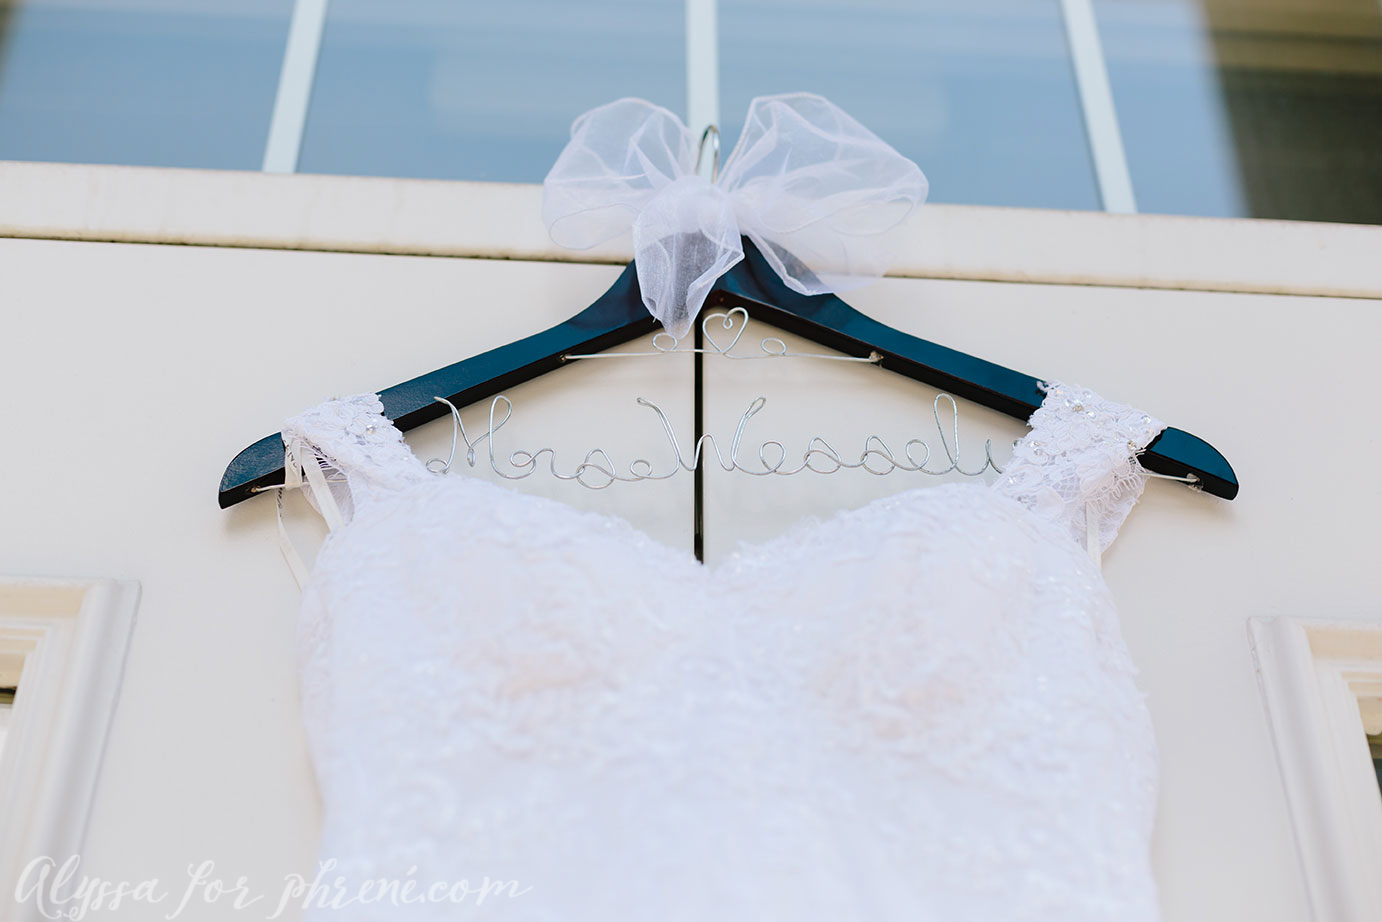 McKay_Tower_wedding_ (8 of 121).jpg